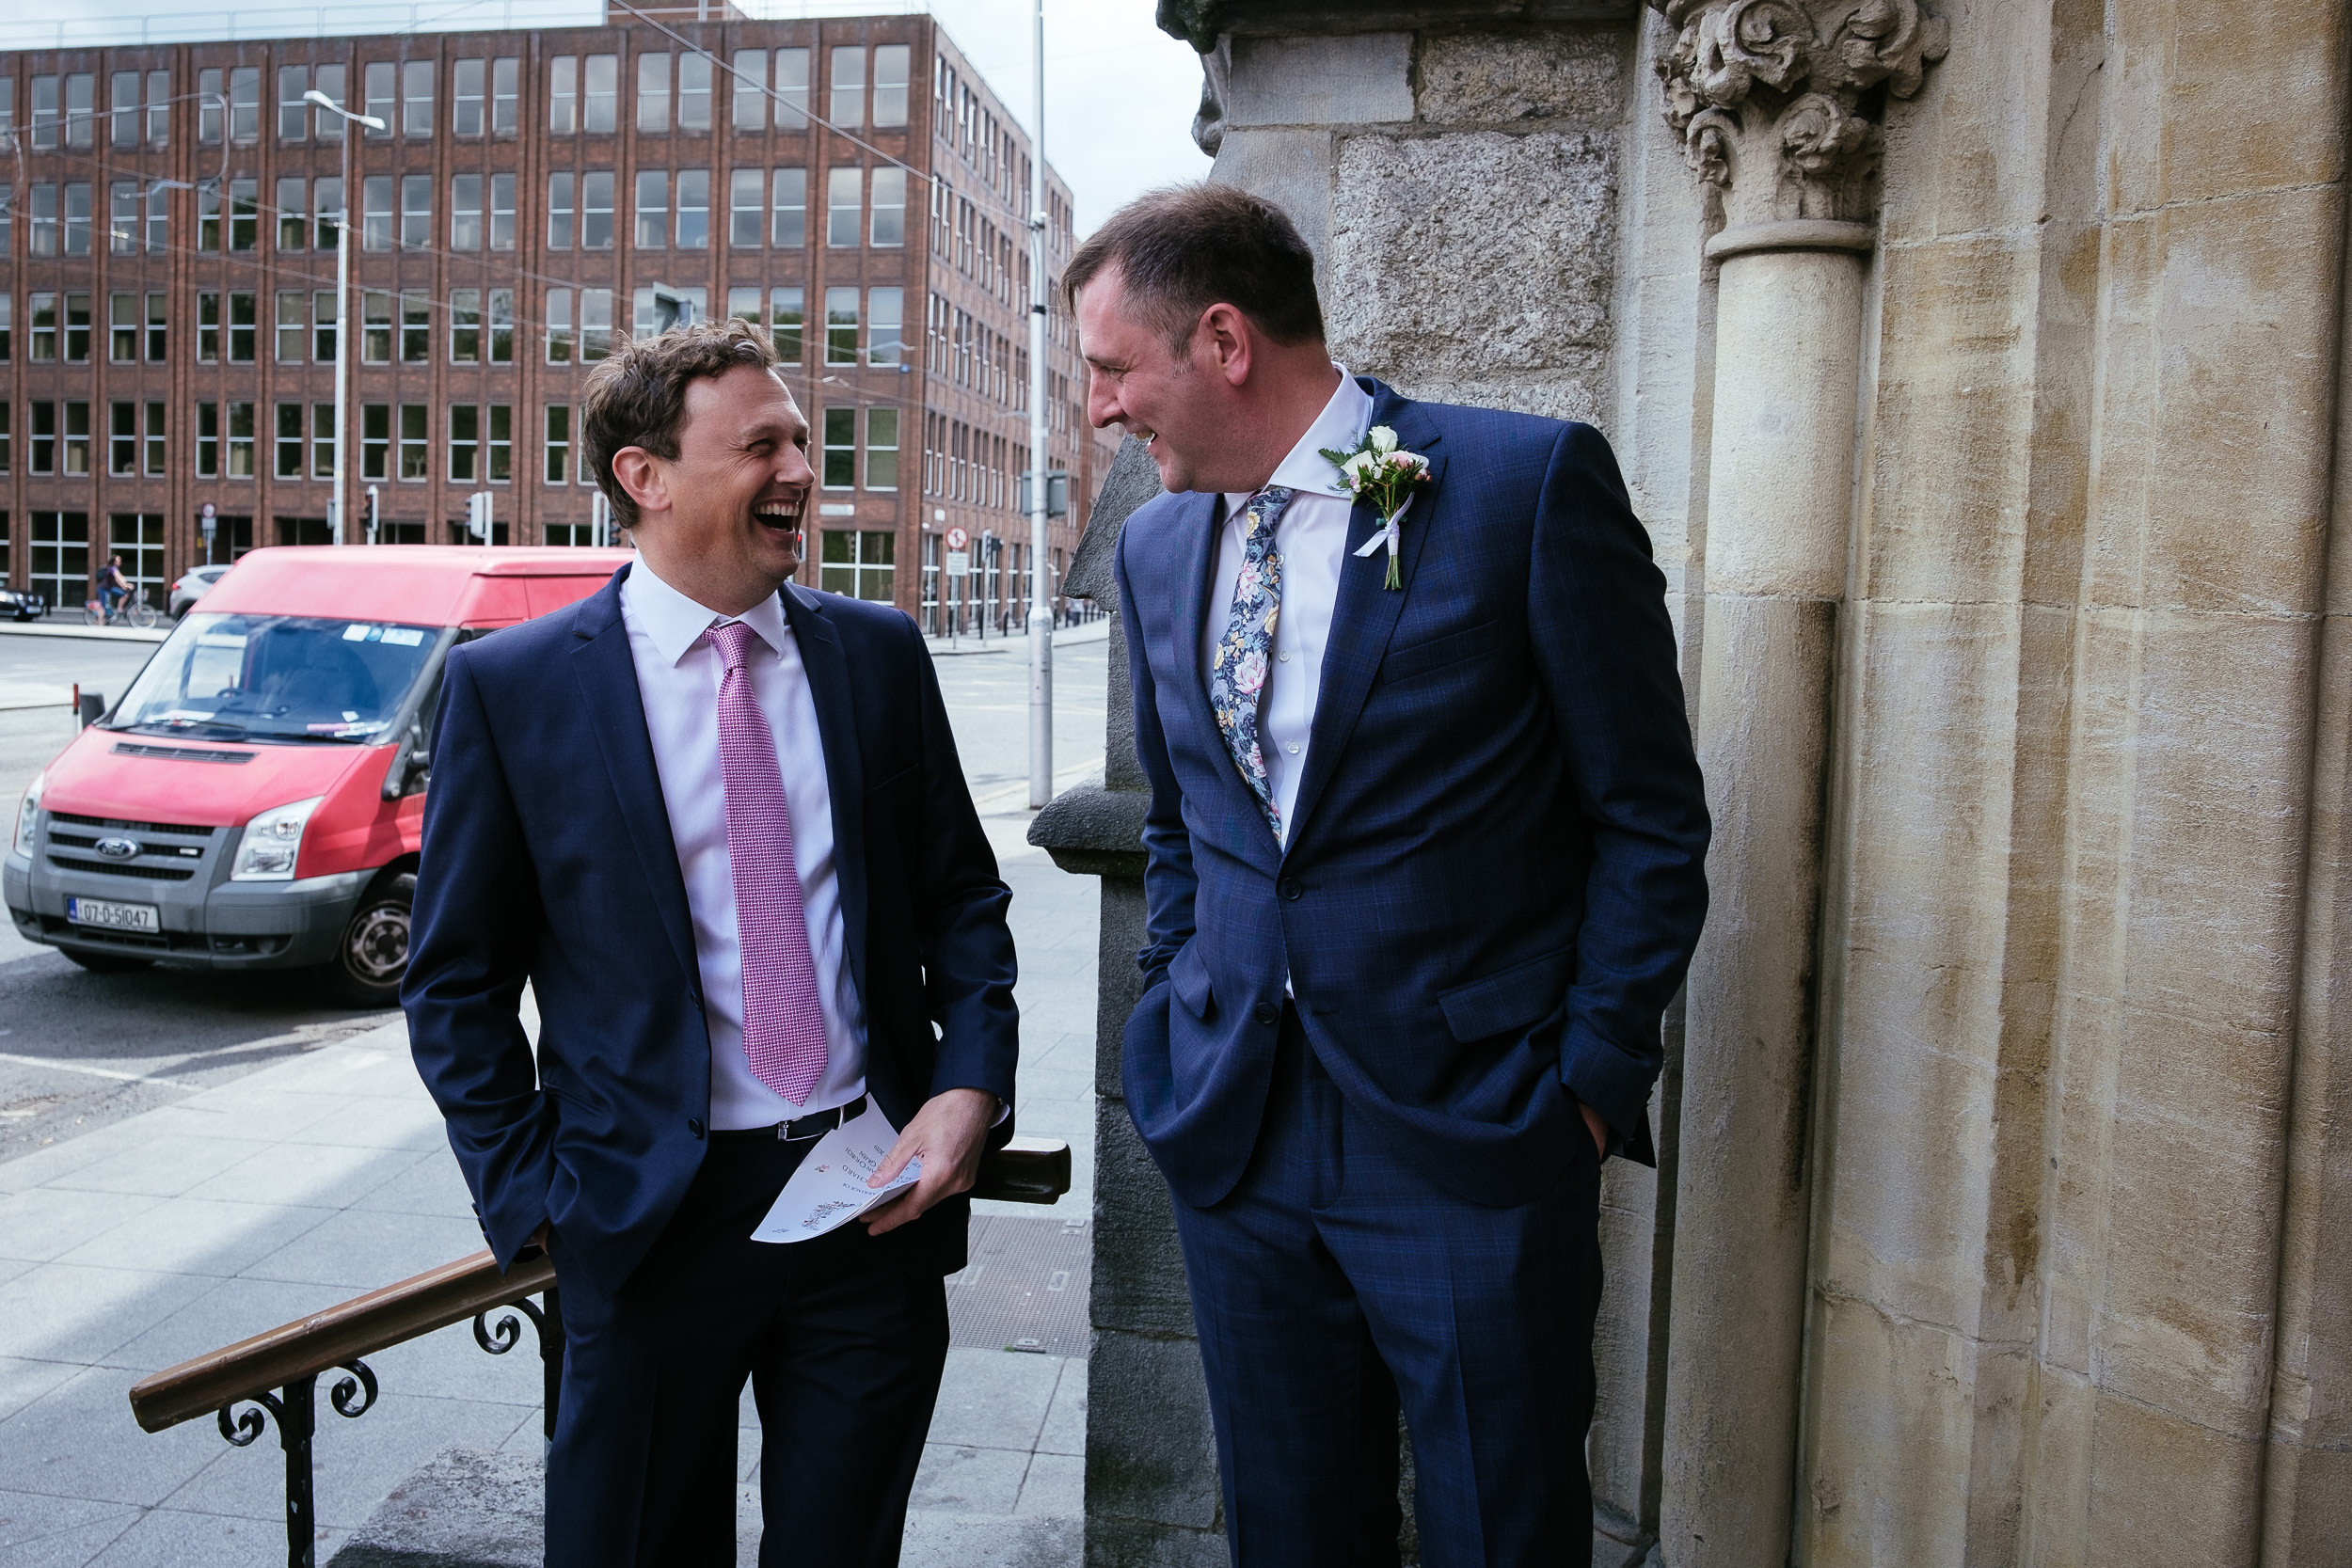 Dublin Unitarian Church Shelbourne Hotel Wedding Photographer 34